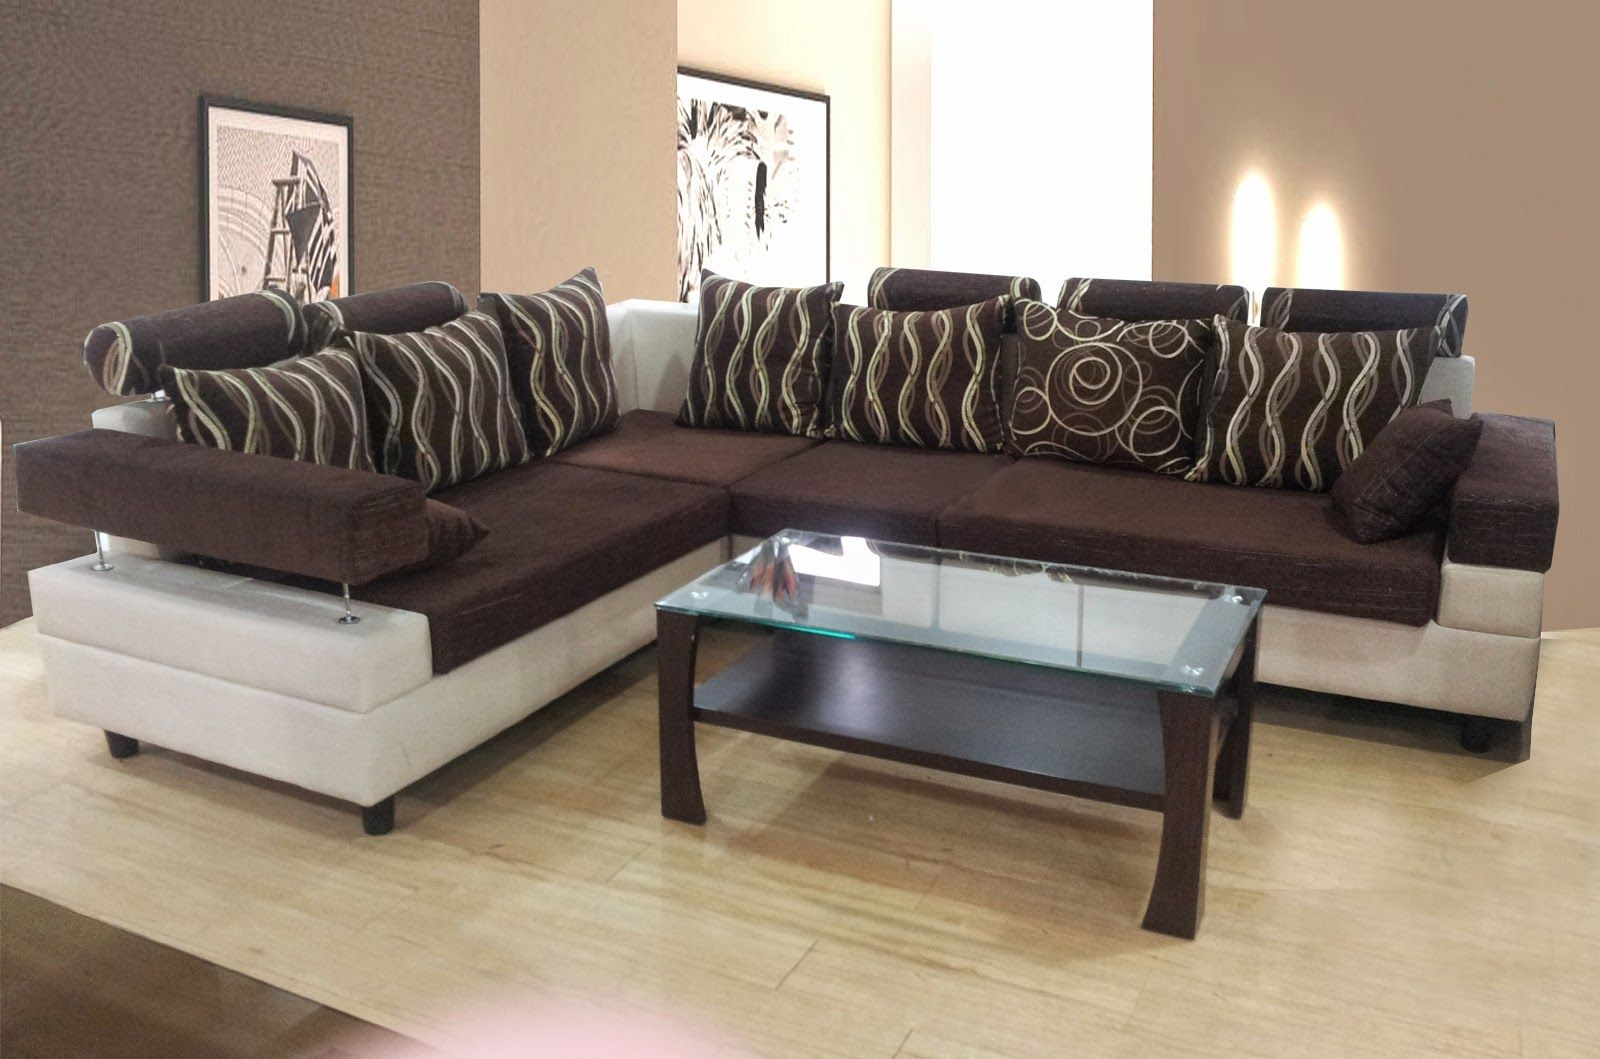 9 Seater Sofa Set Designs With Price Nairobi Luxe Sofa Sets Welcome To Nairobi Luxe Furniture